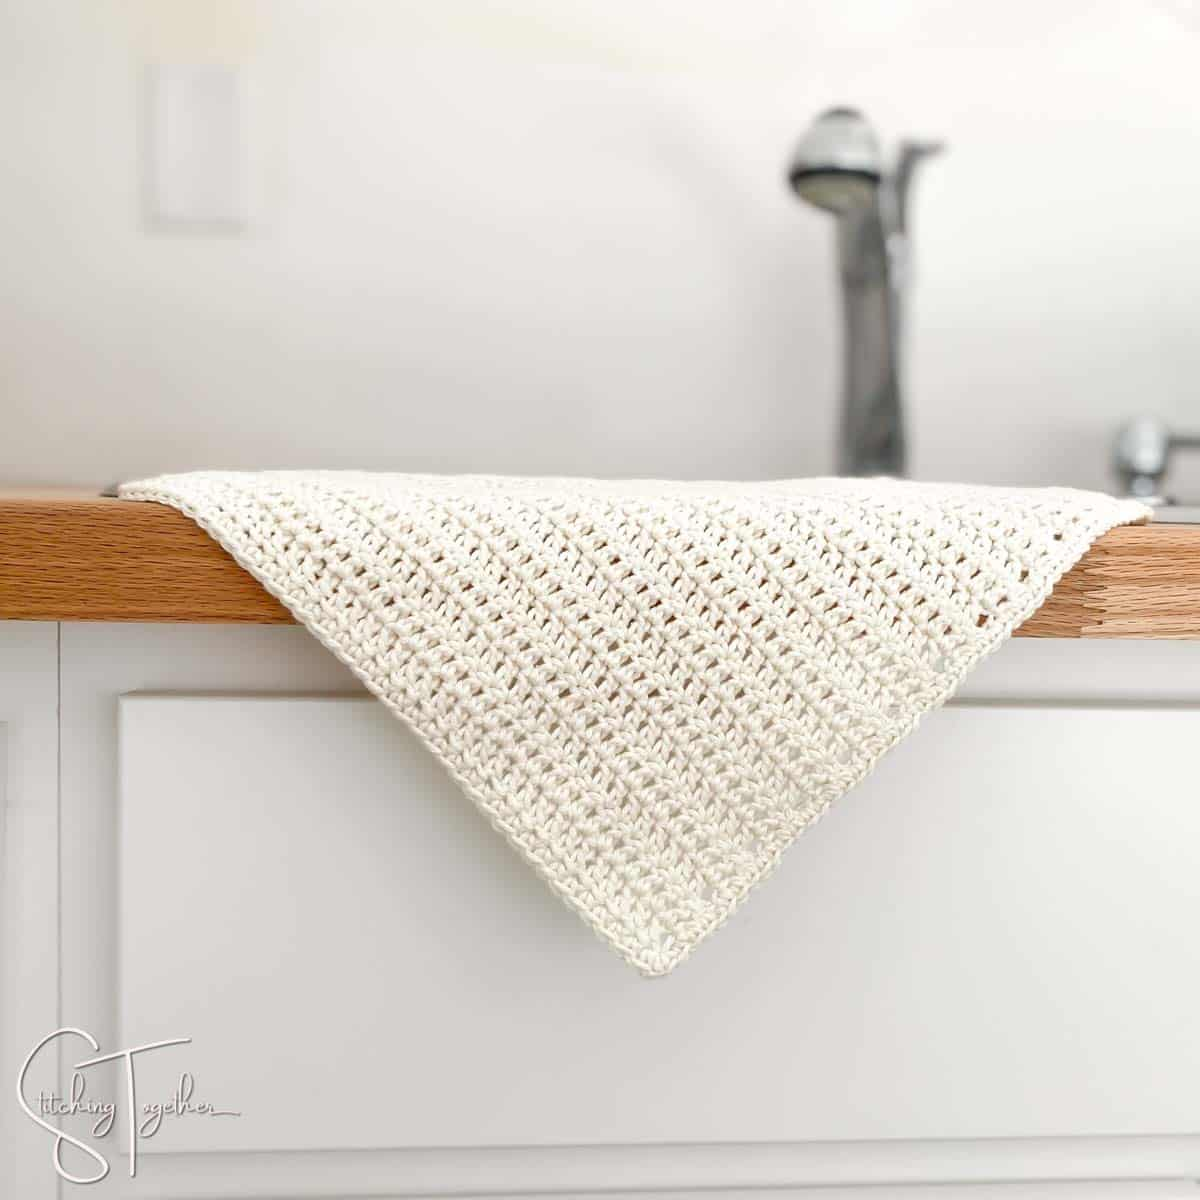 cream crochet dishcloth hanging over the side of the sink